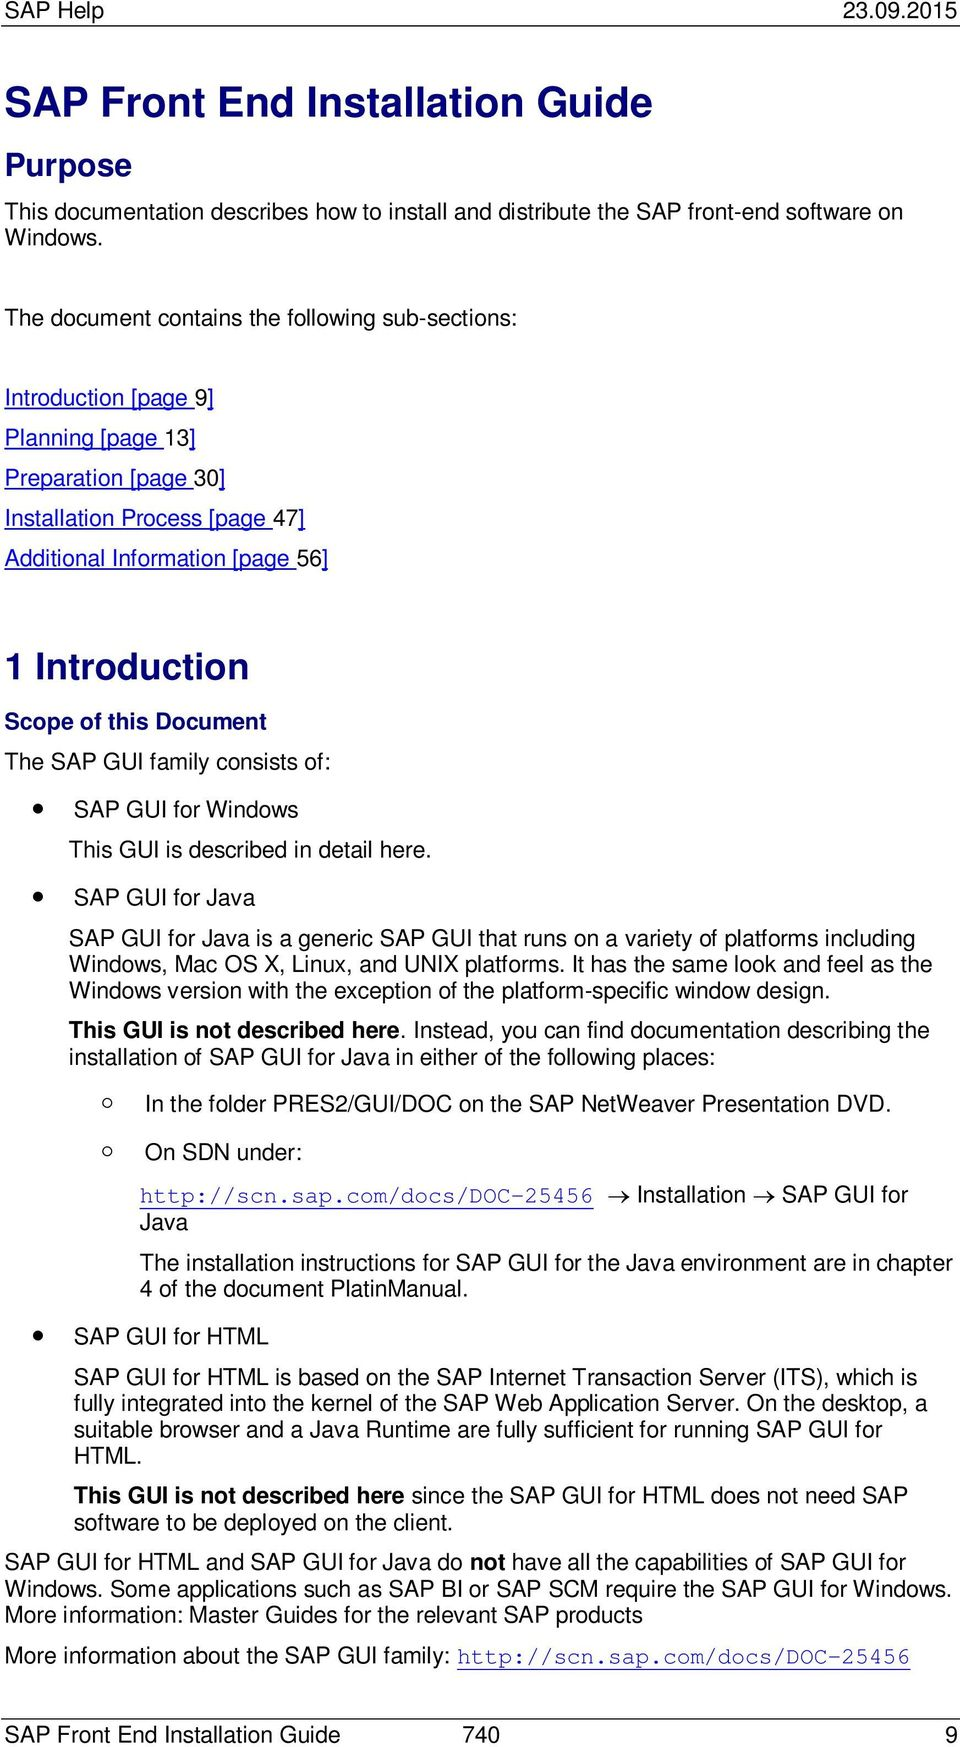 SAP Front End Installation Guide - PDF